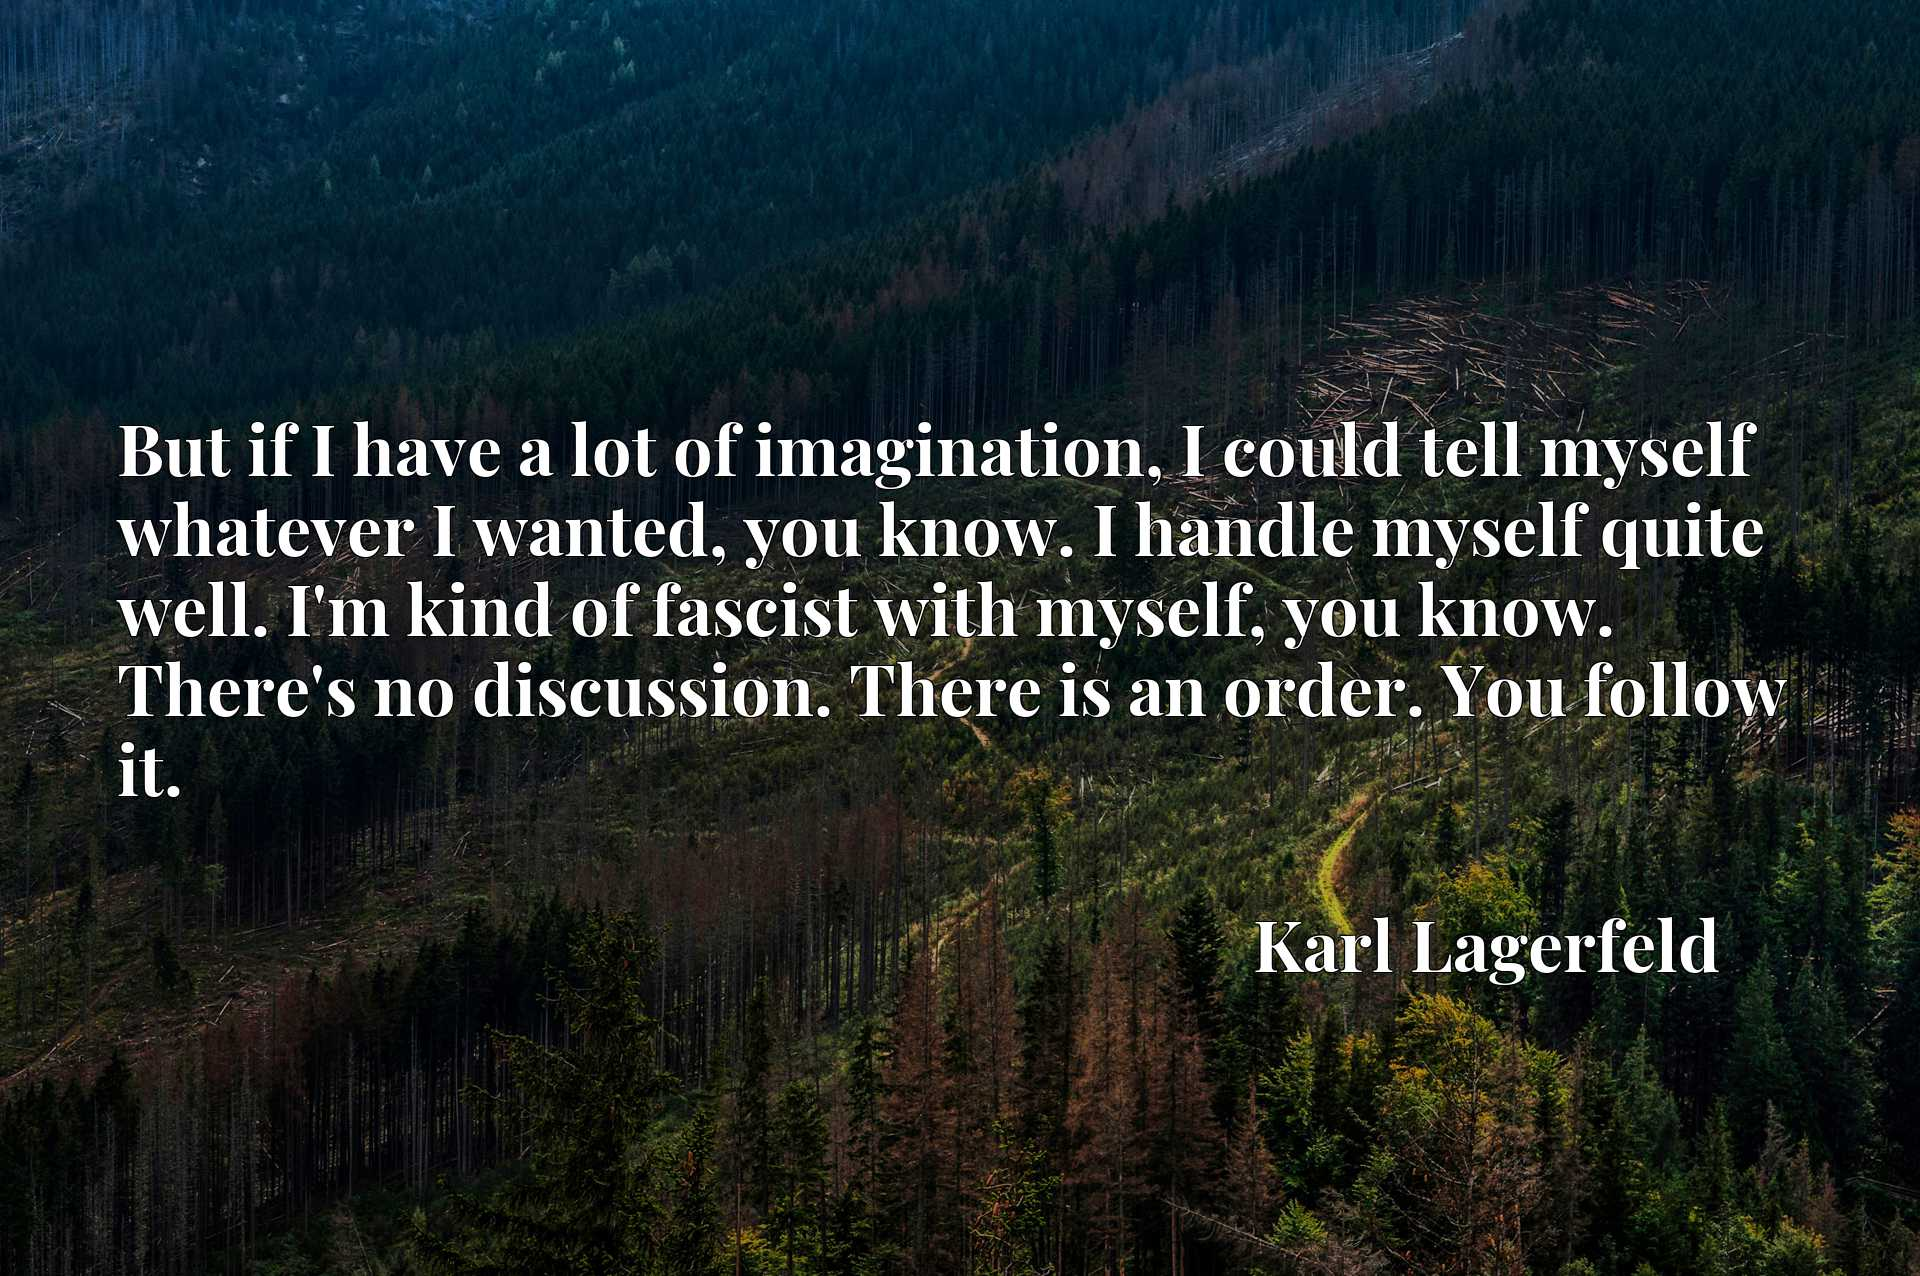 But if I have a lot of imagination, I could tell myself whatever I wanted, you know. I handle myself quite well. I'm kind of fascist with myself, you know. There's no discussion. There is an order. You follow it.